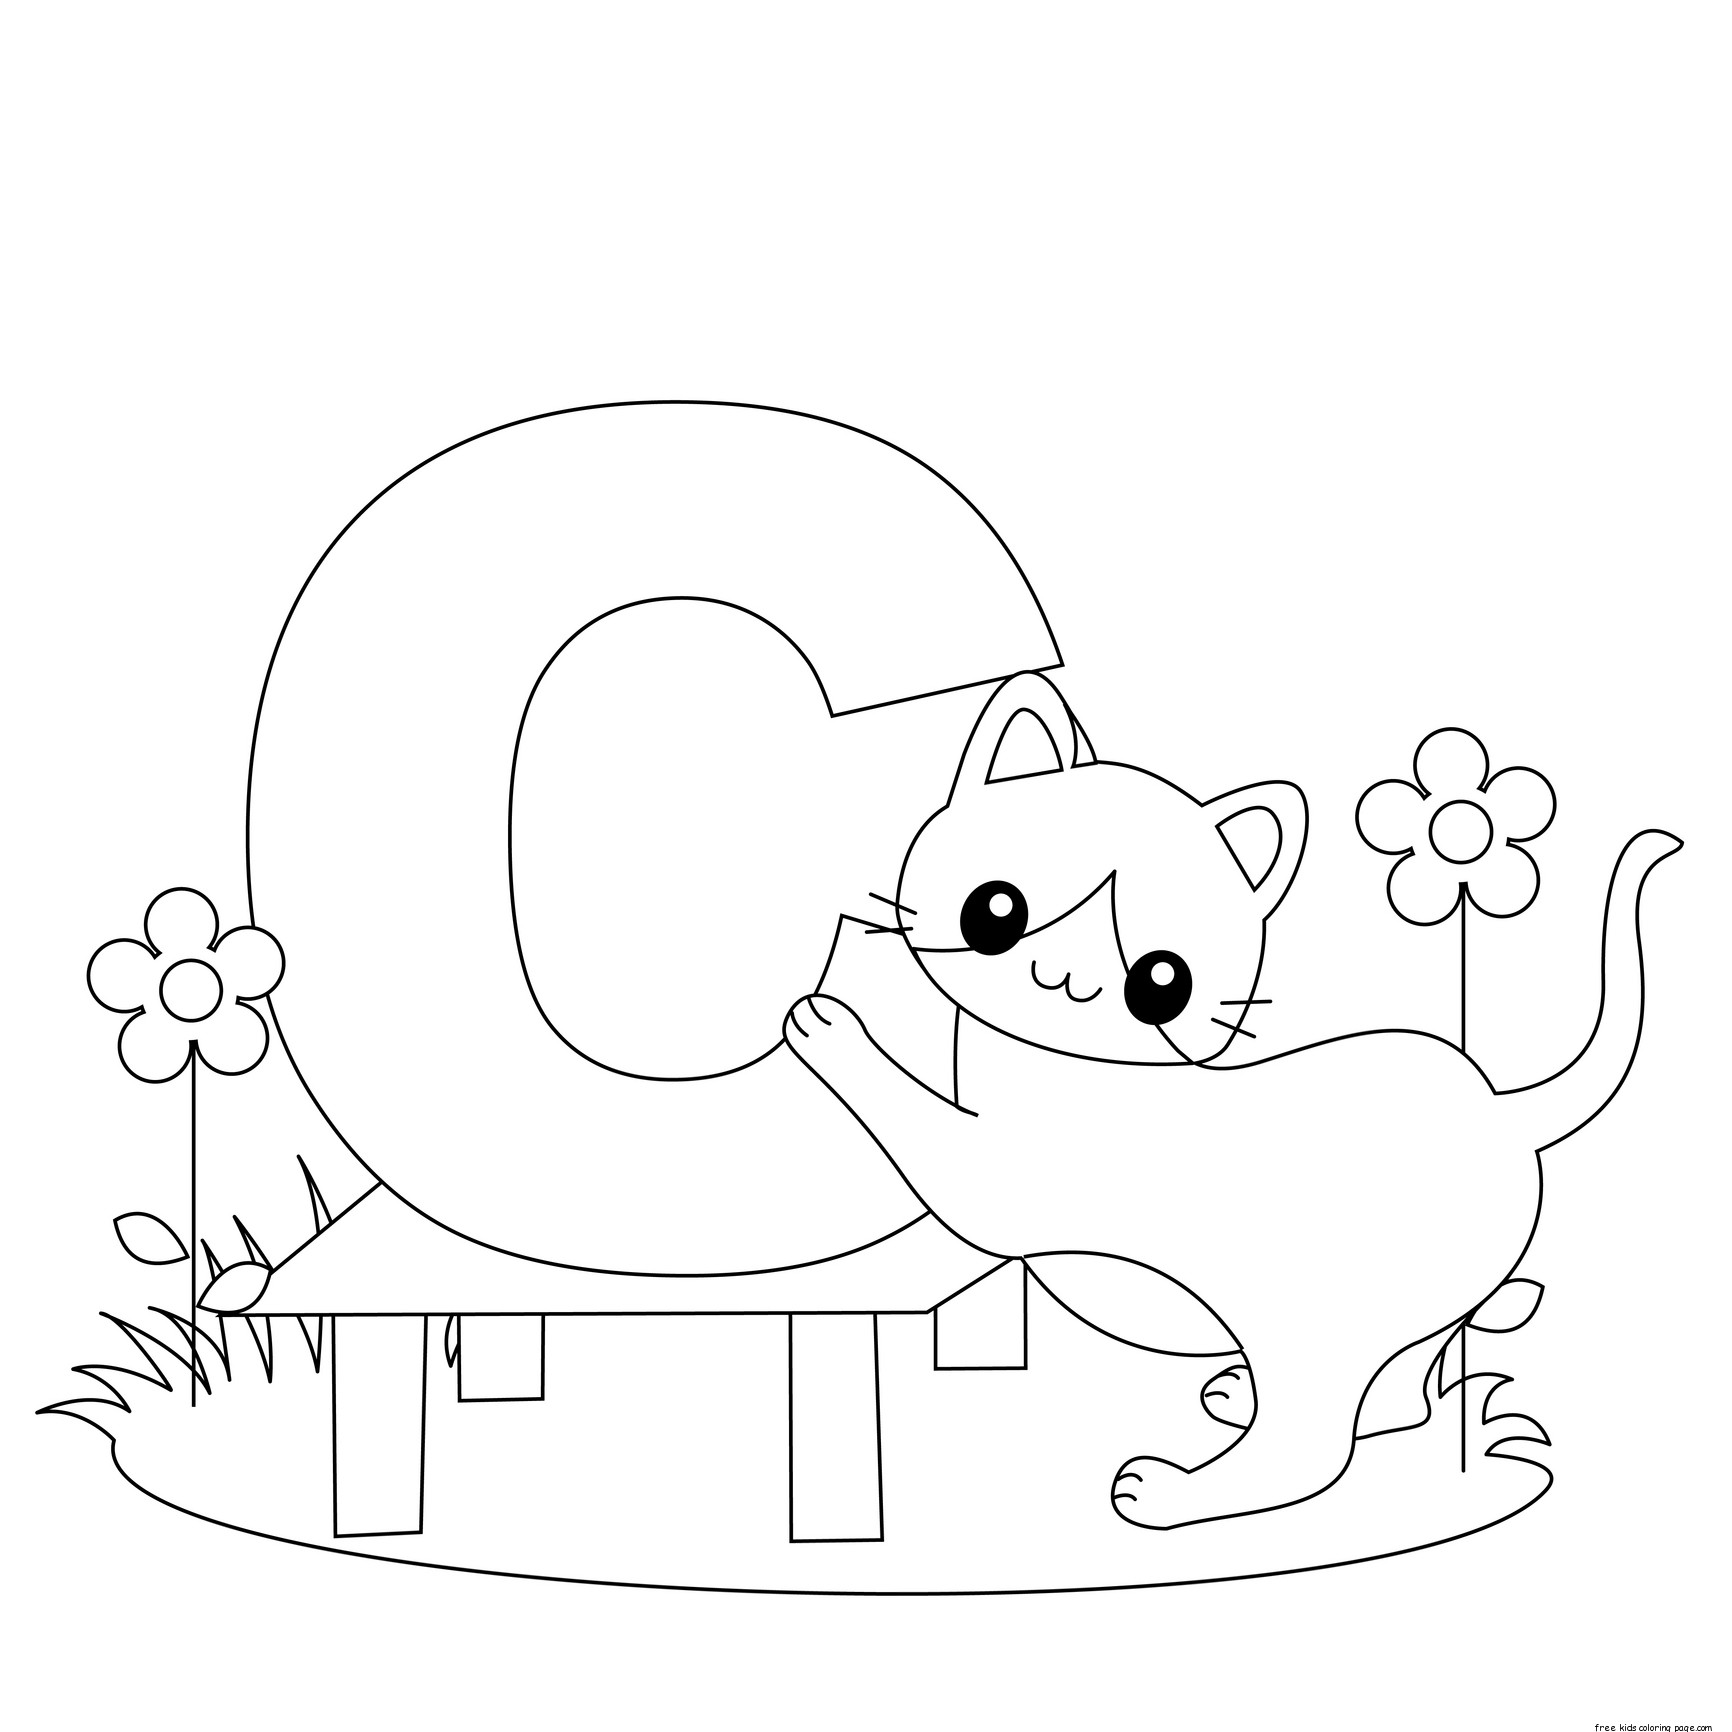 printable alphabet worksheets letter c for cat for preschoolfree printable coloring pages for kids